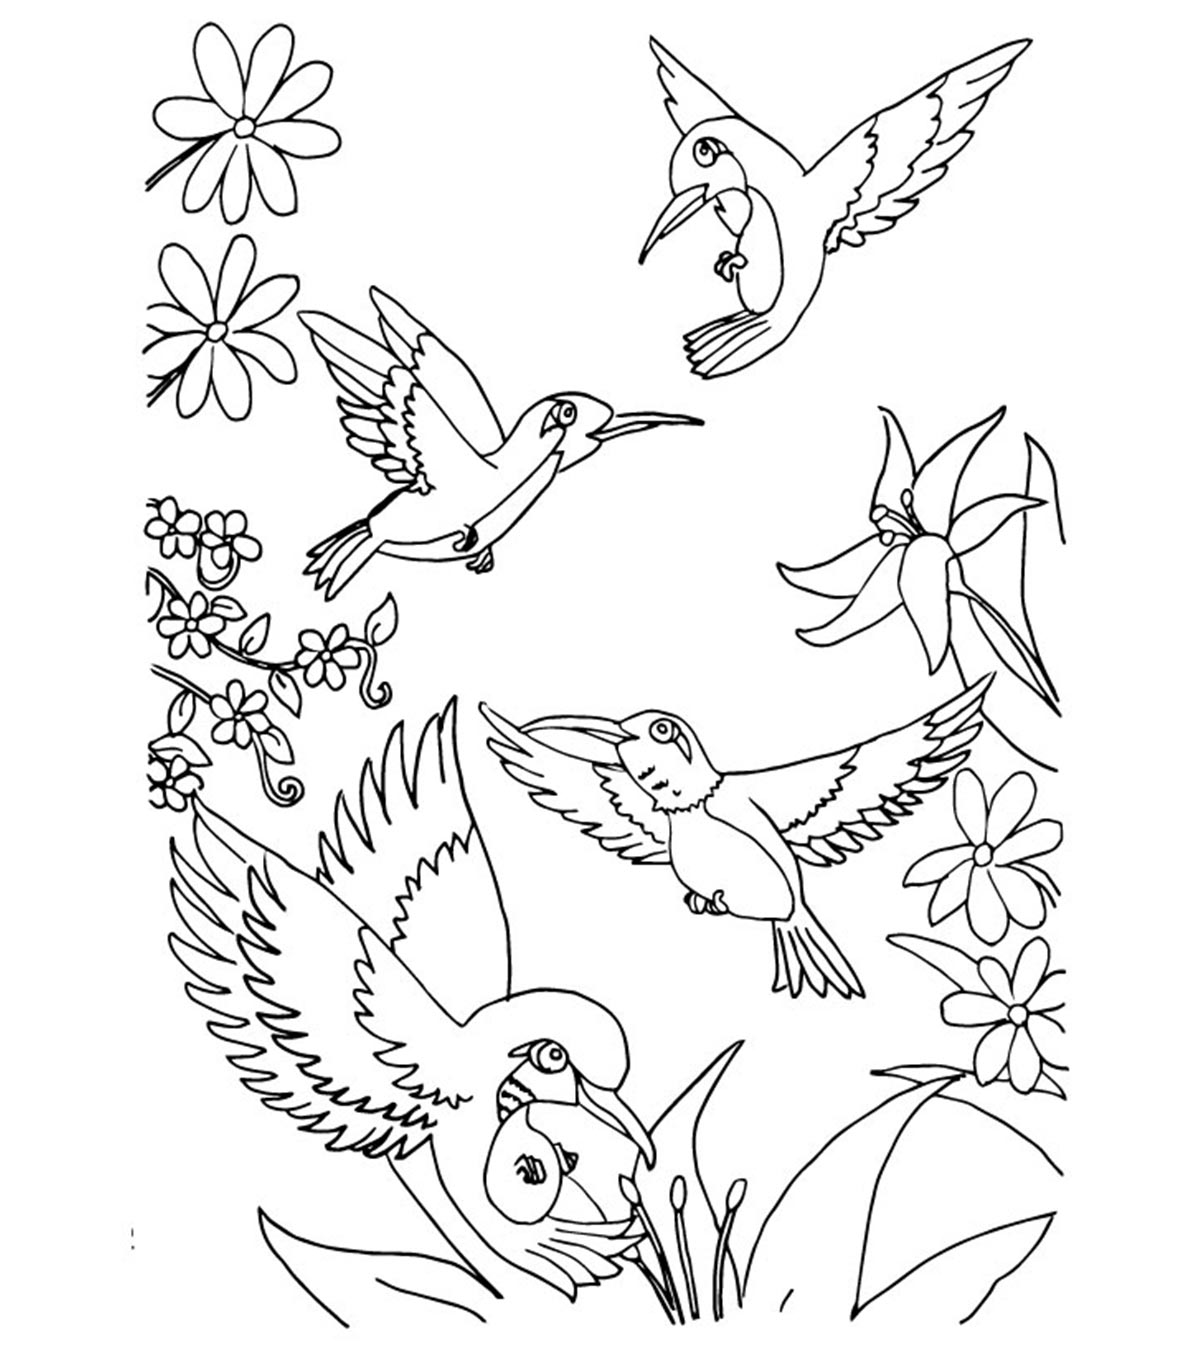 birds coloring pages arizona bird coloring pages for adults bestappsforkidscom birds pages coloring